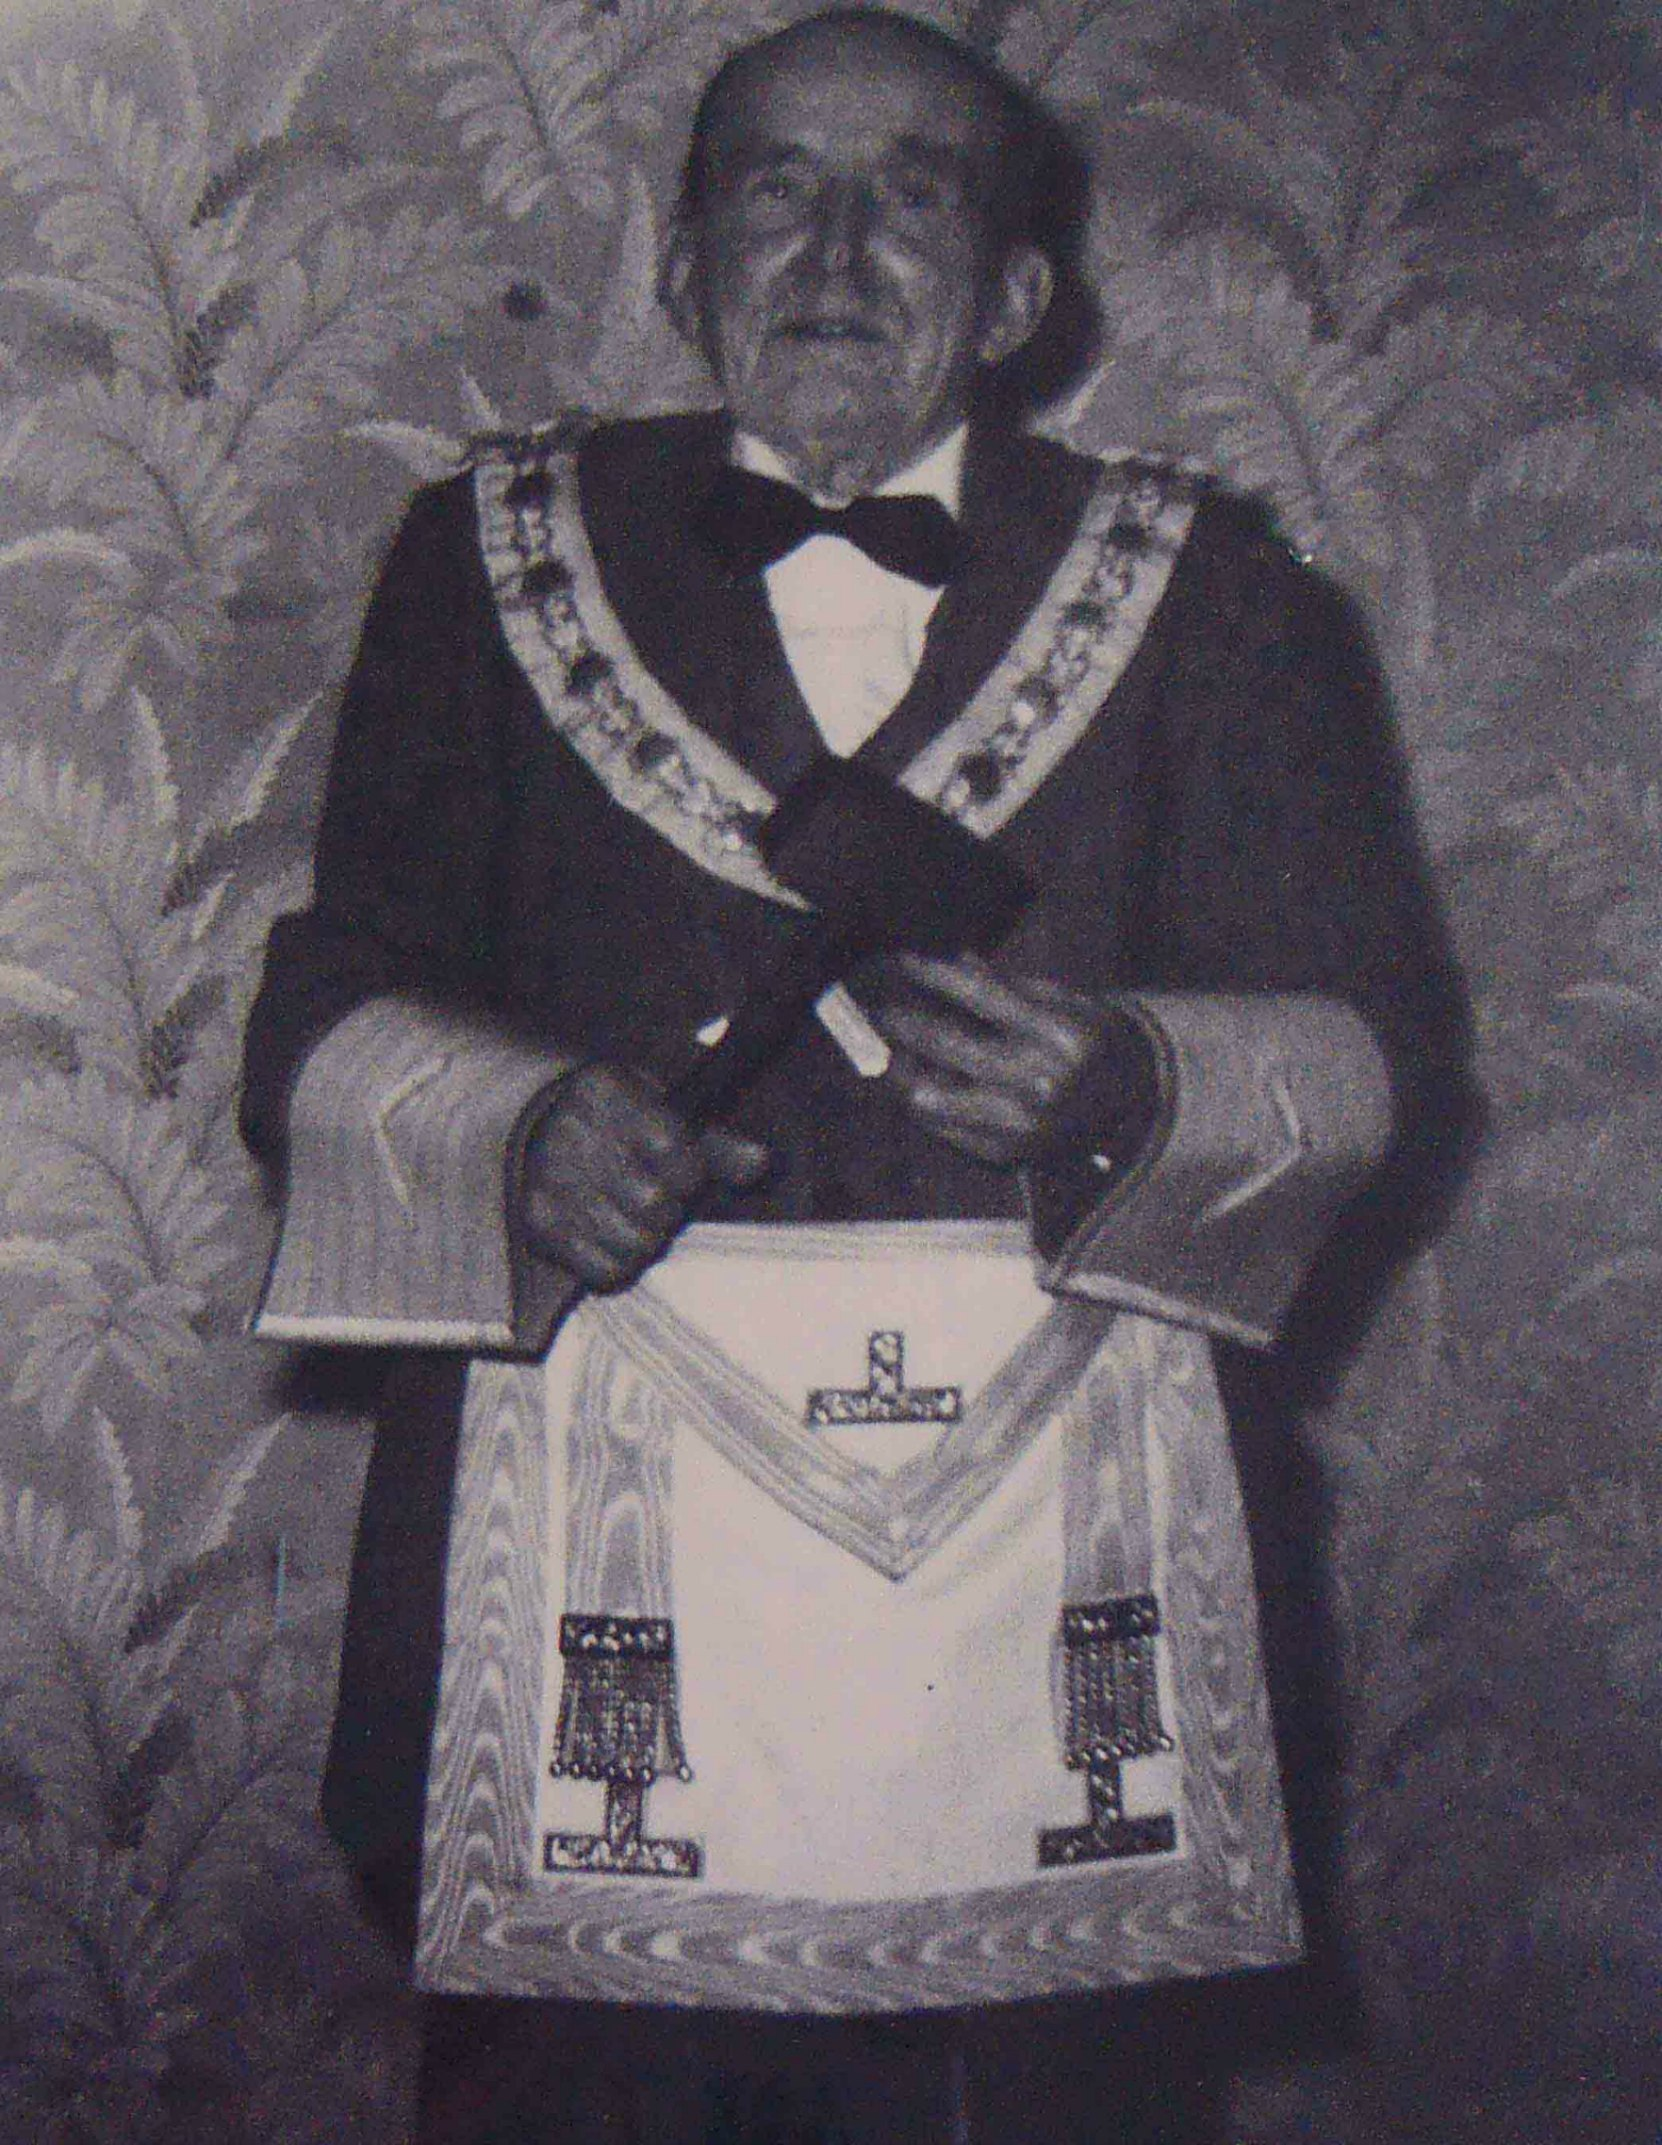 James McLeod Campbell, aged 94 in 1959